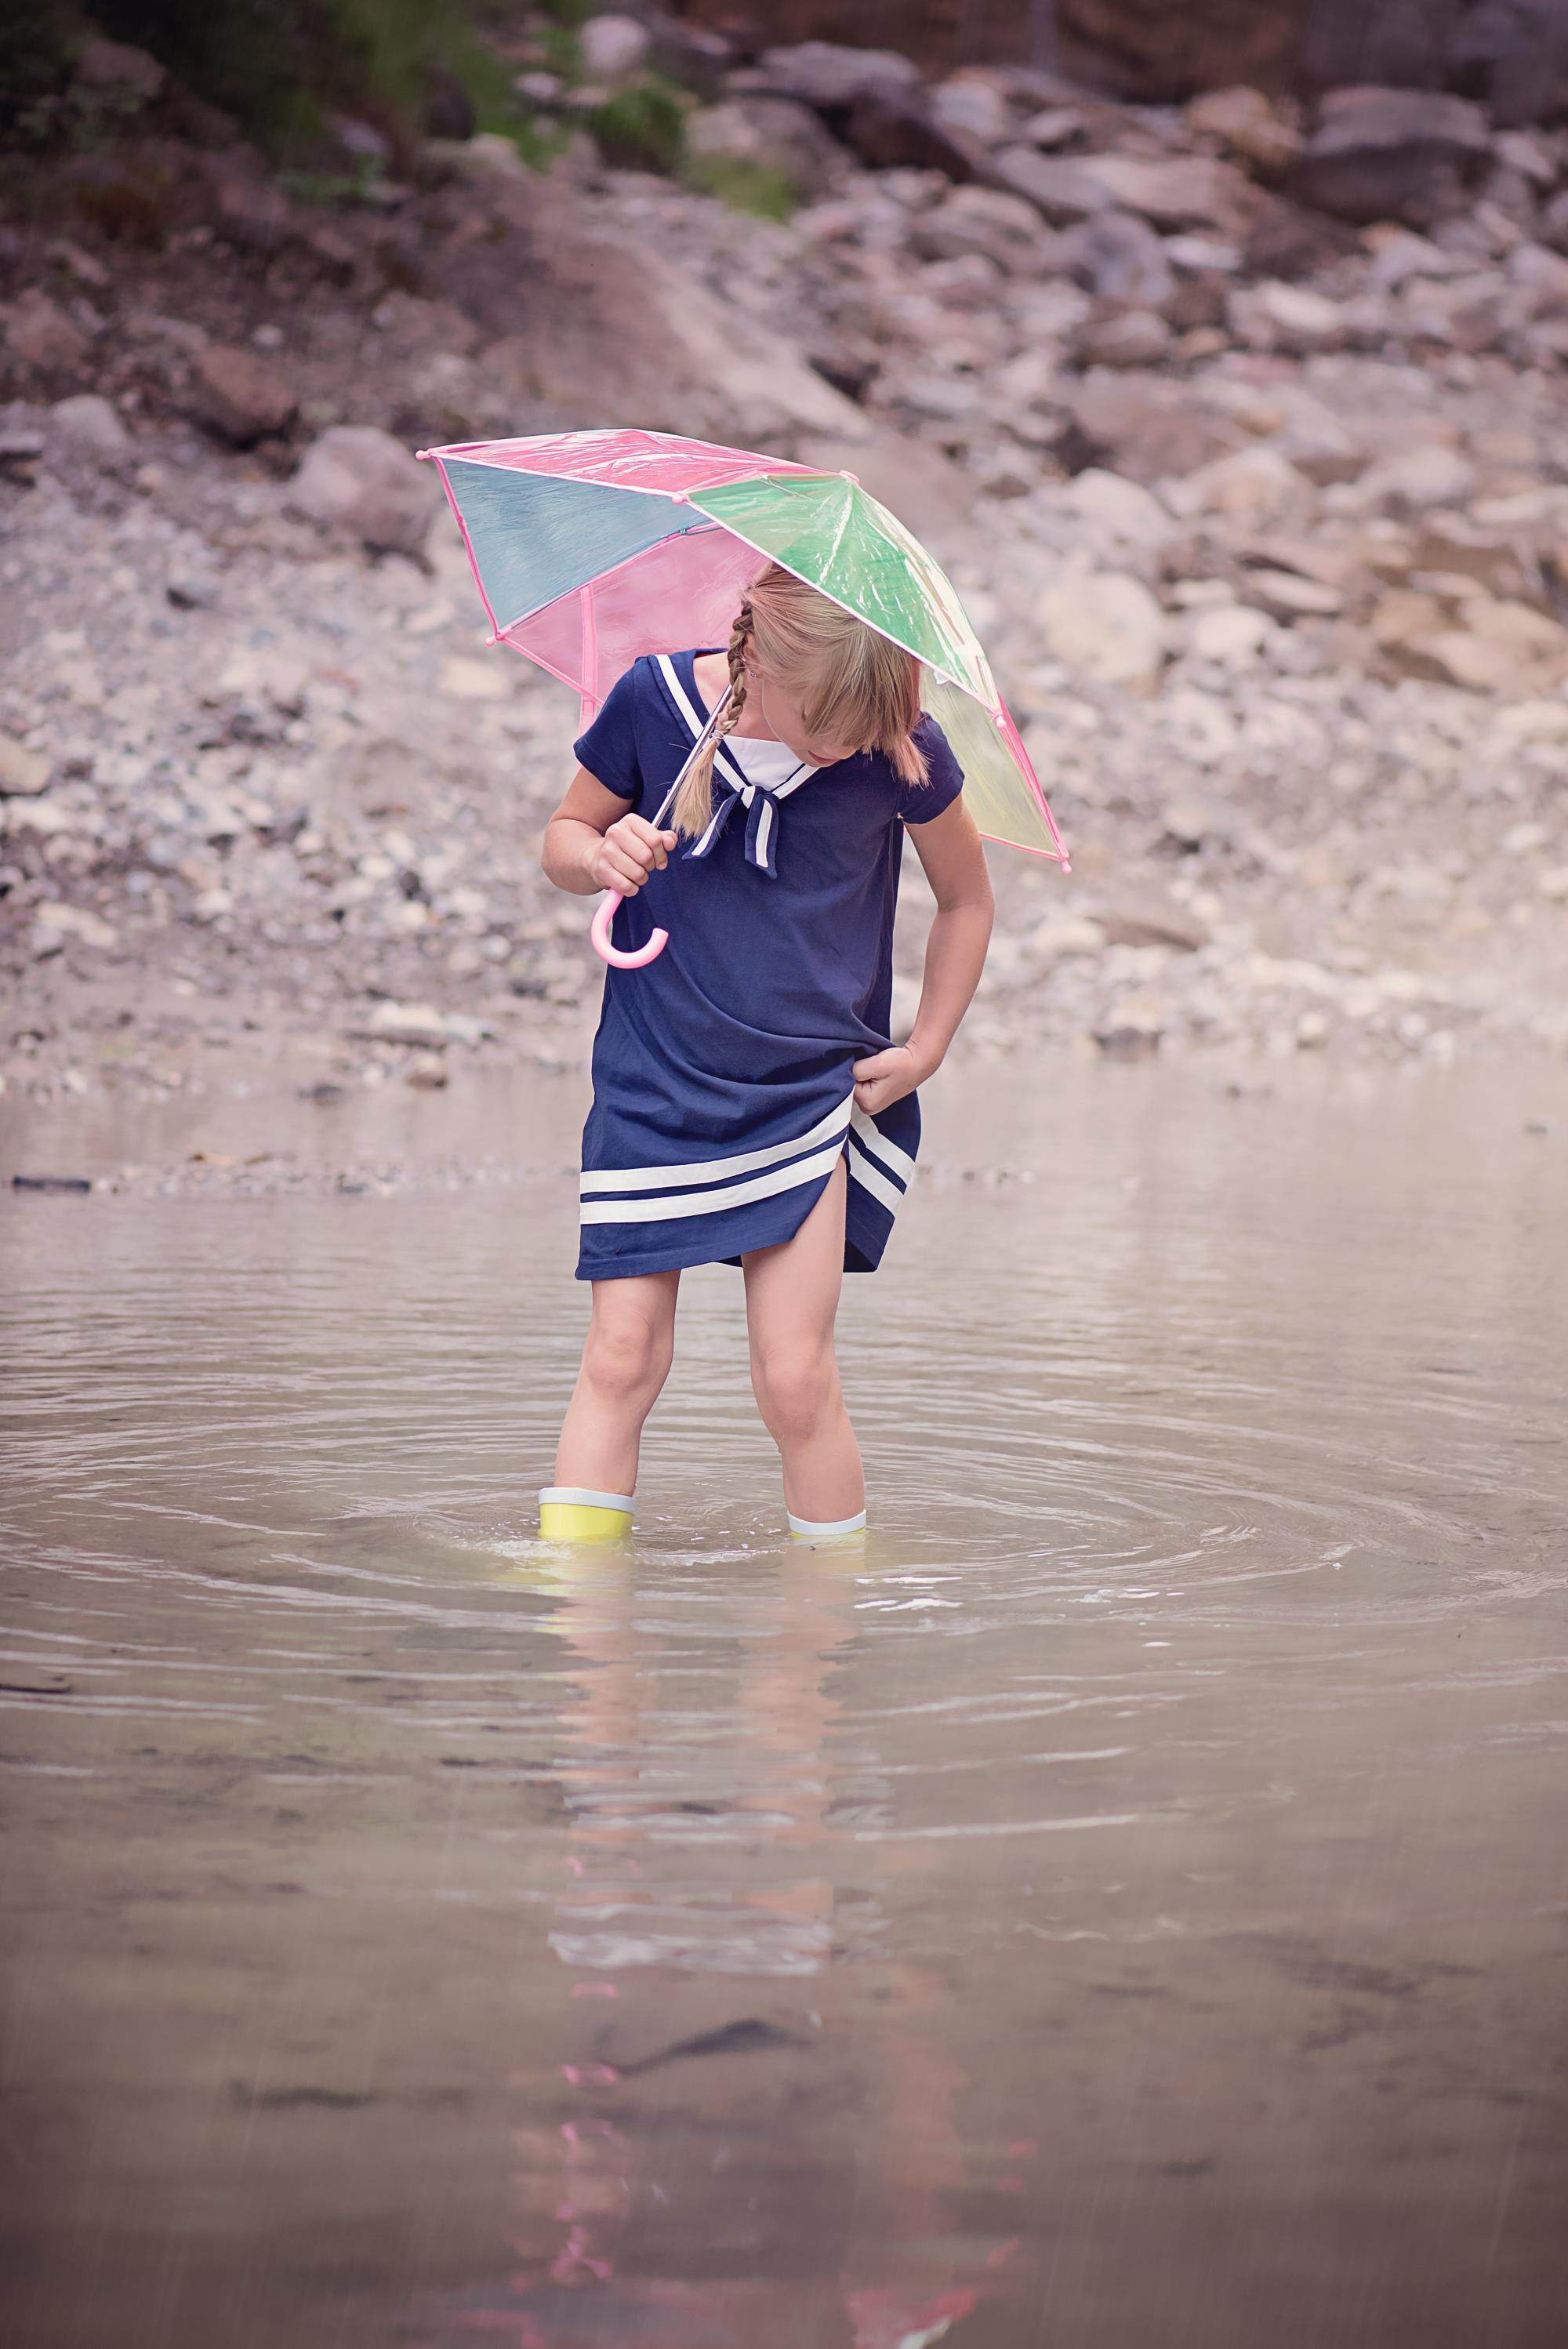 girl in rain boots with umbrella